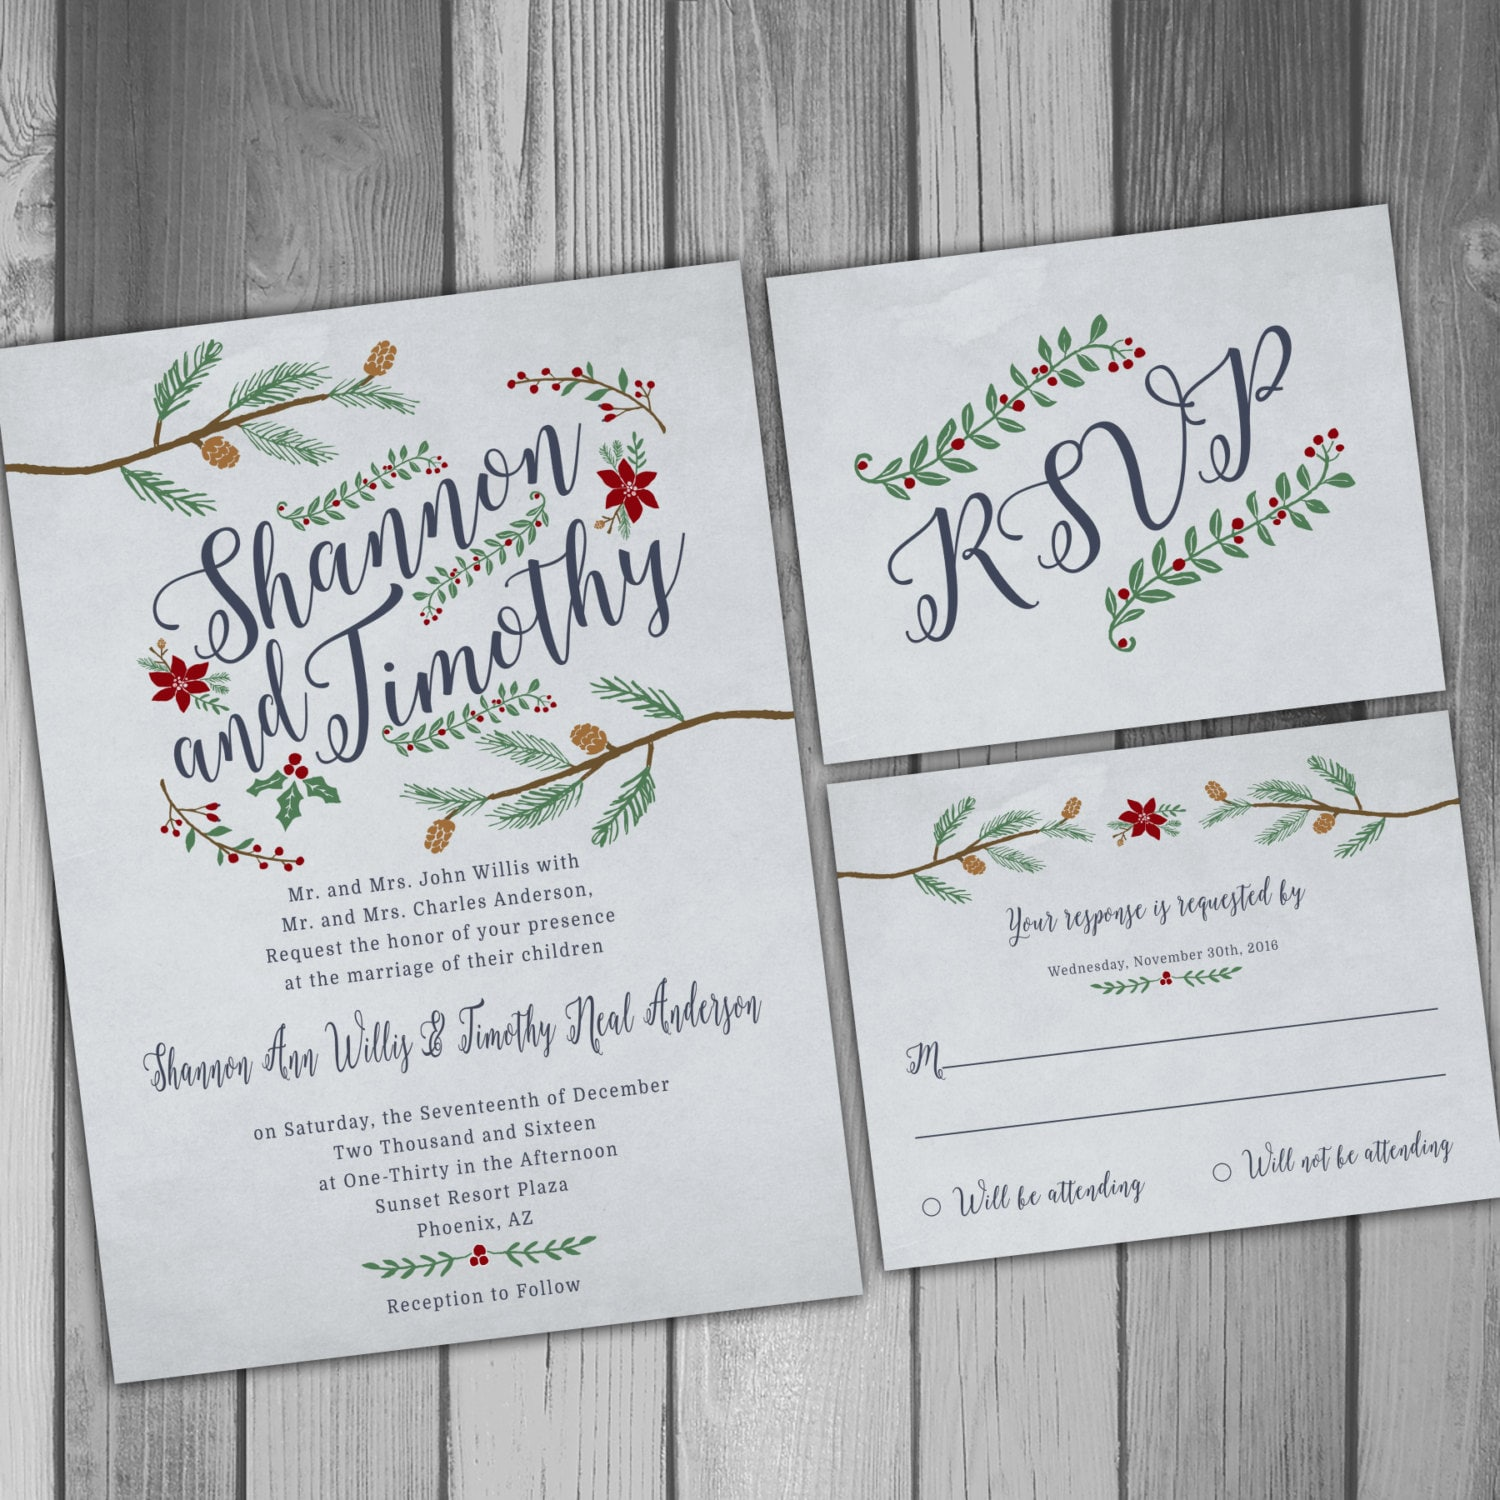 chalkboard wedding invitations vistaprint yaseen for With christmas wedding invitations vistaprint